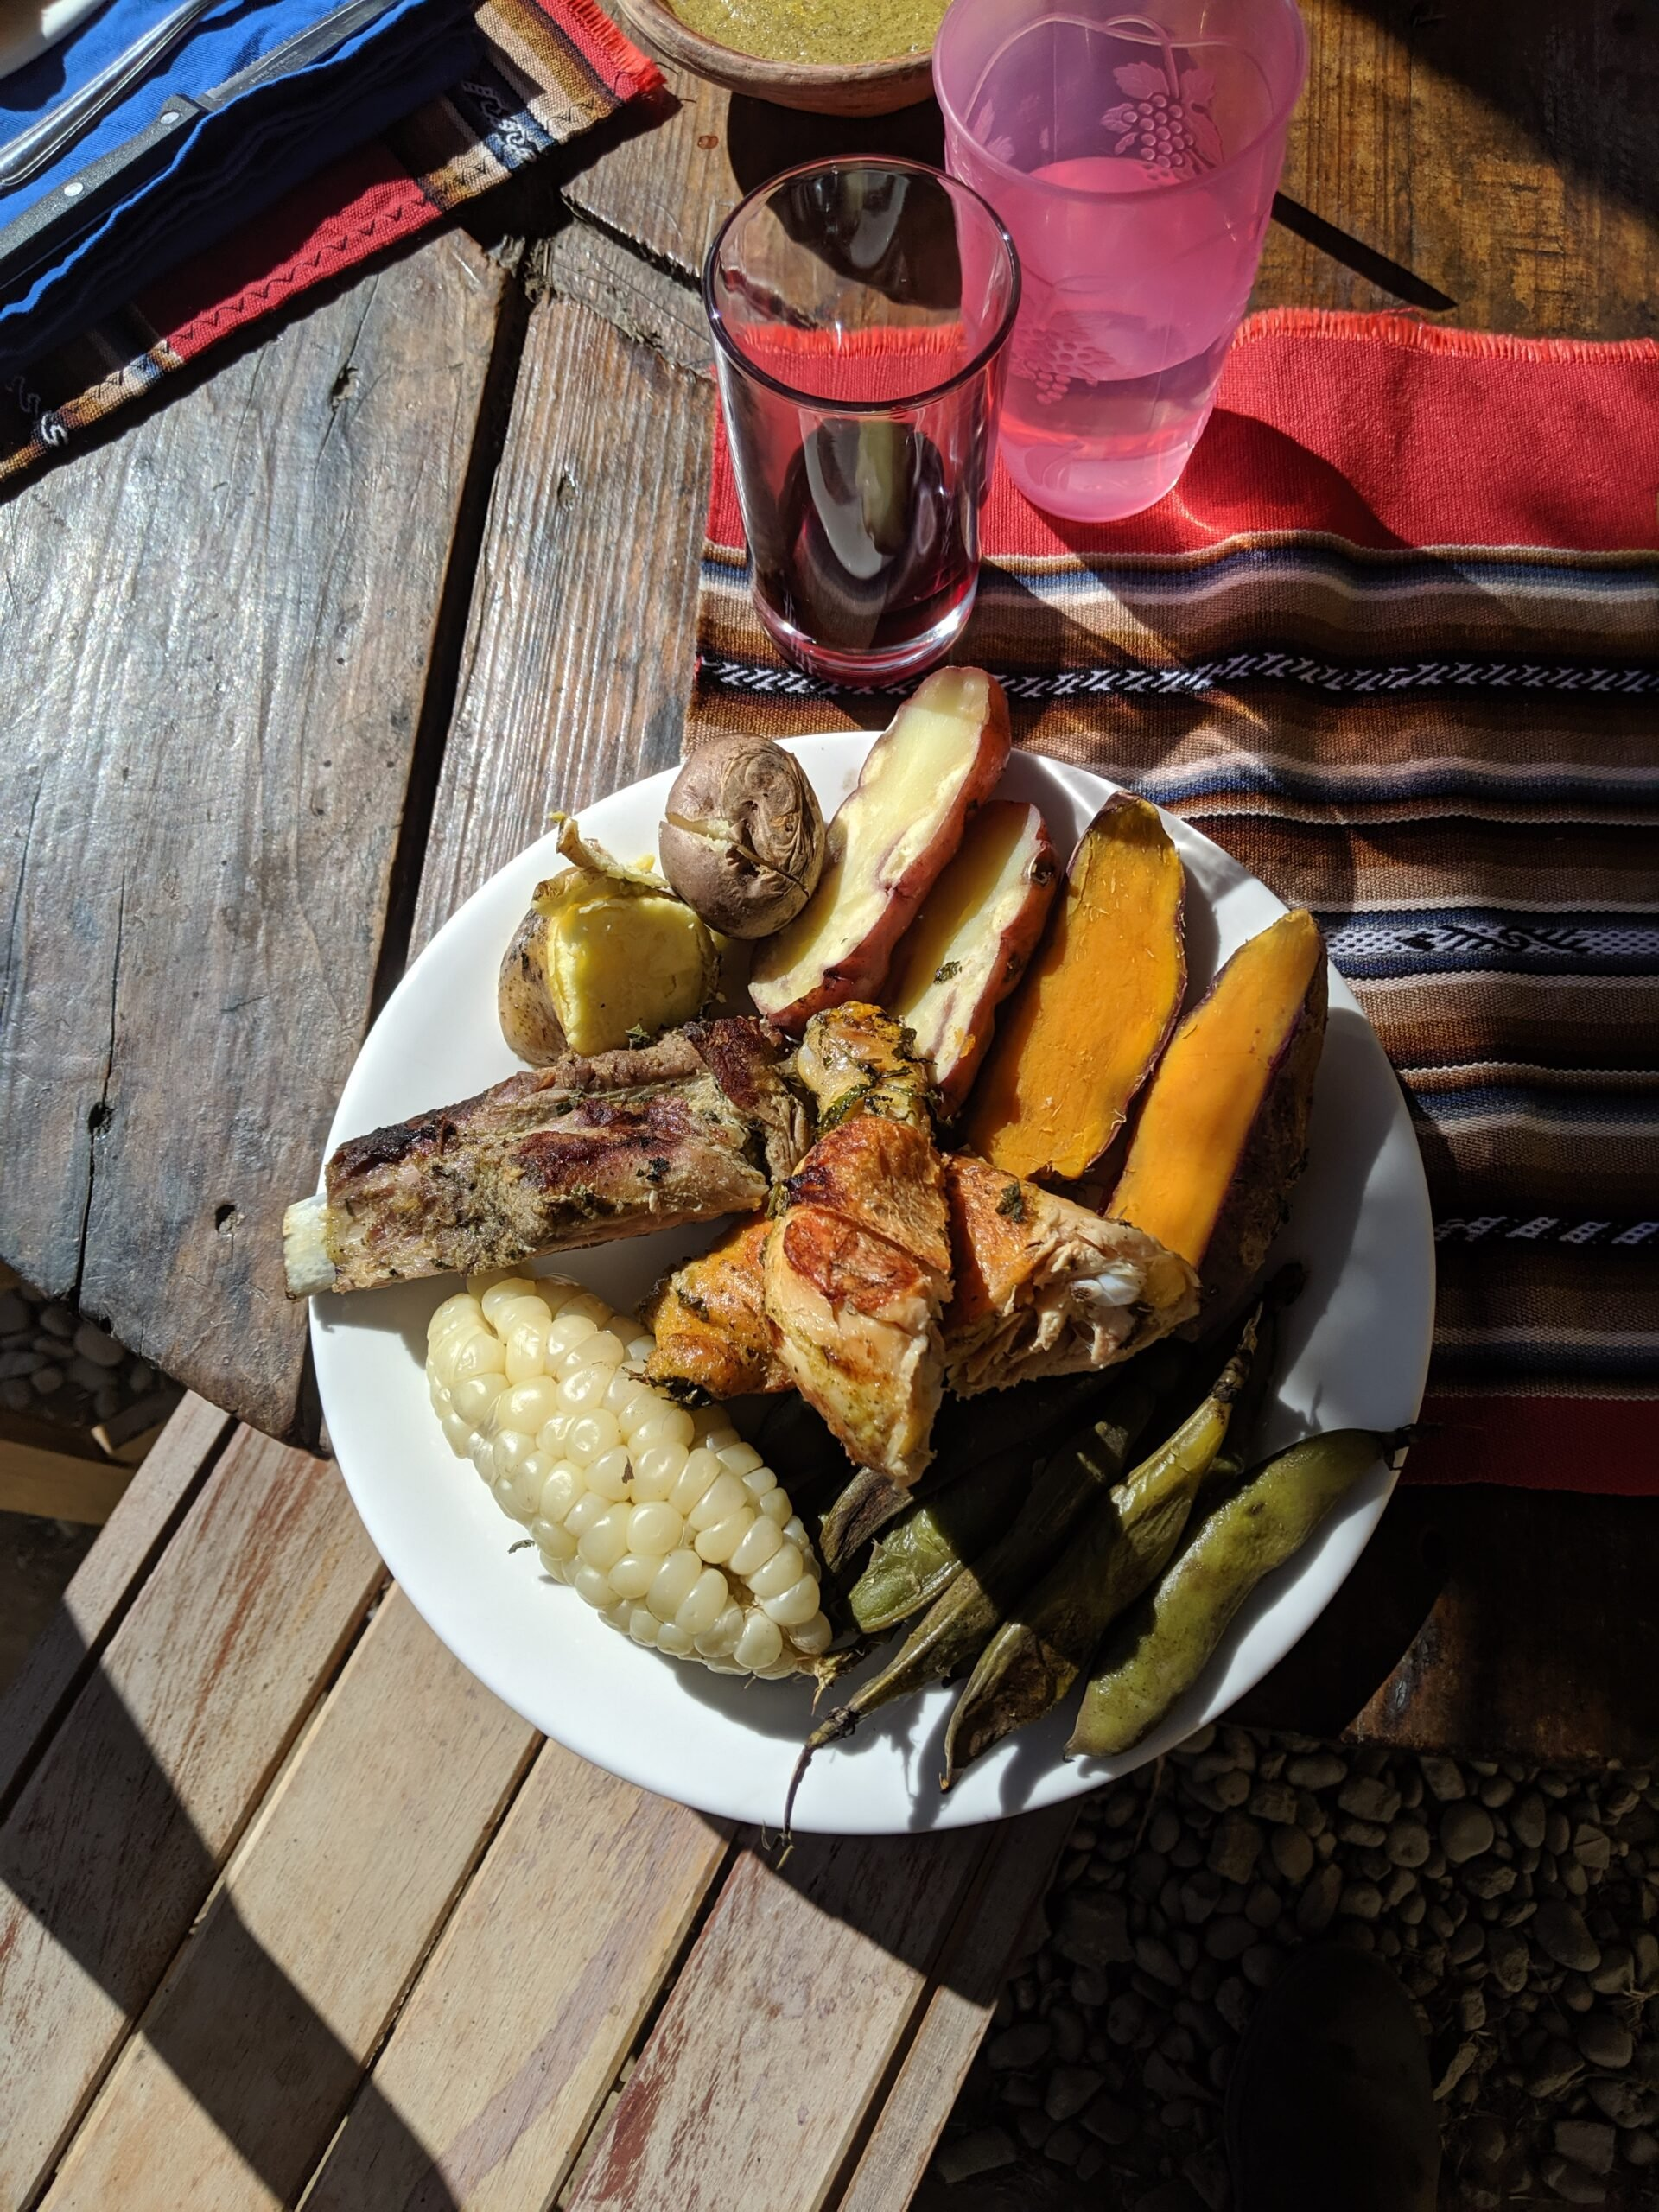 A plate of traditional peruvian meal called a pachamama, containing several kinds of potatoes, chicken, corn, beef ribs, and beans.